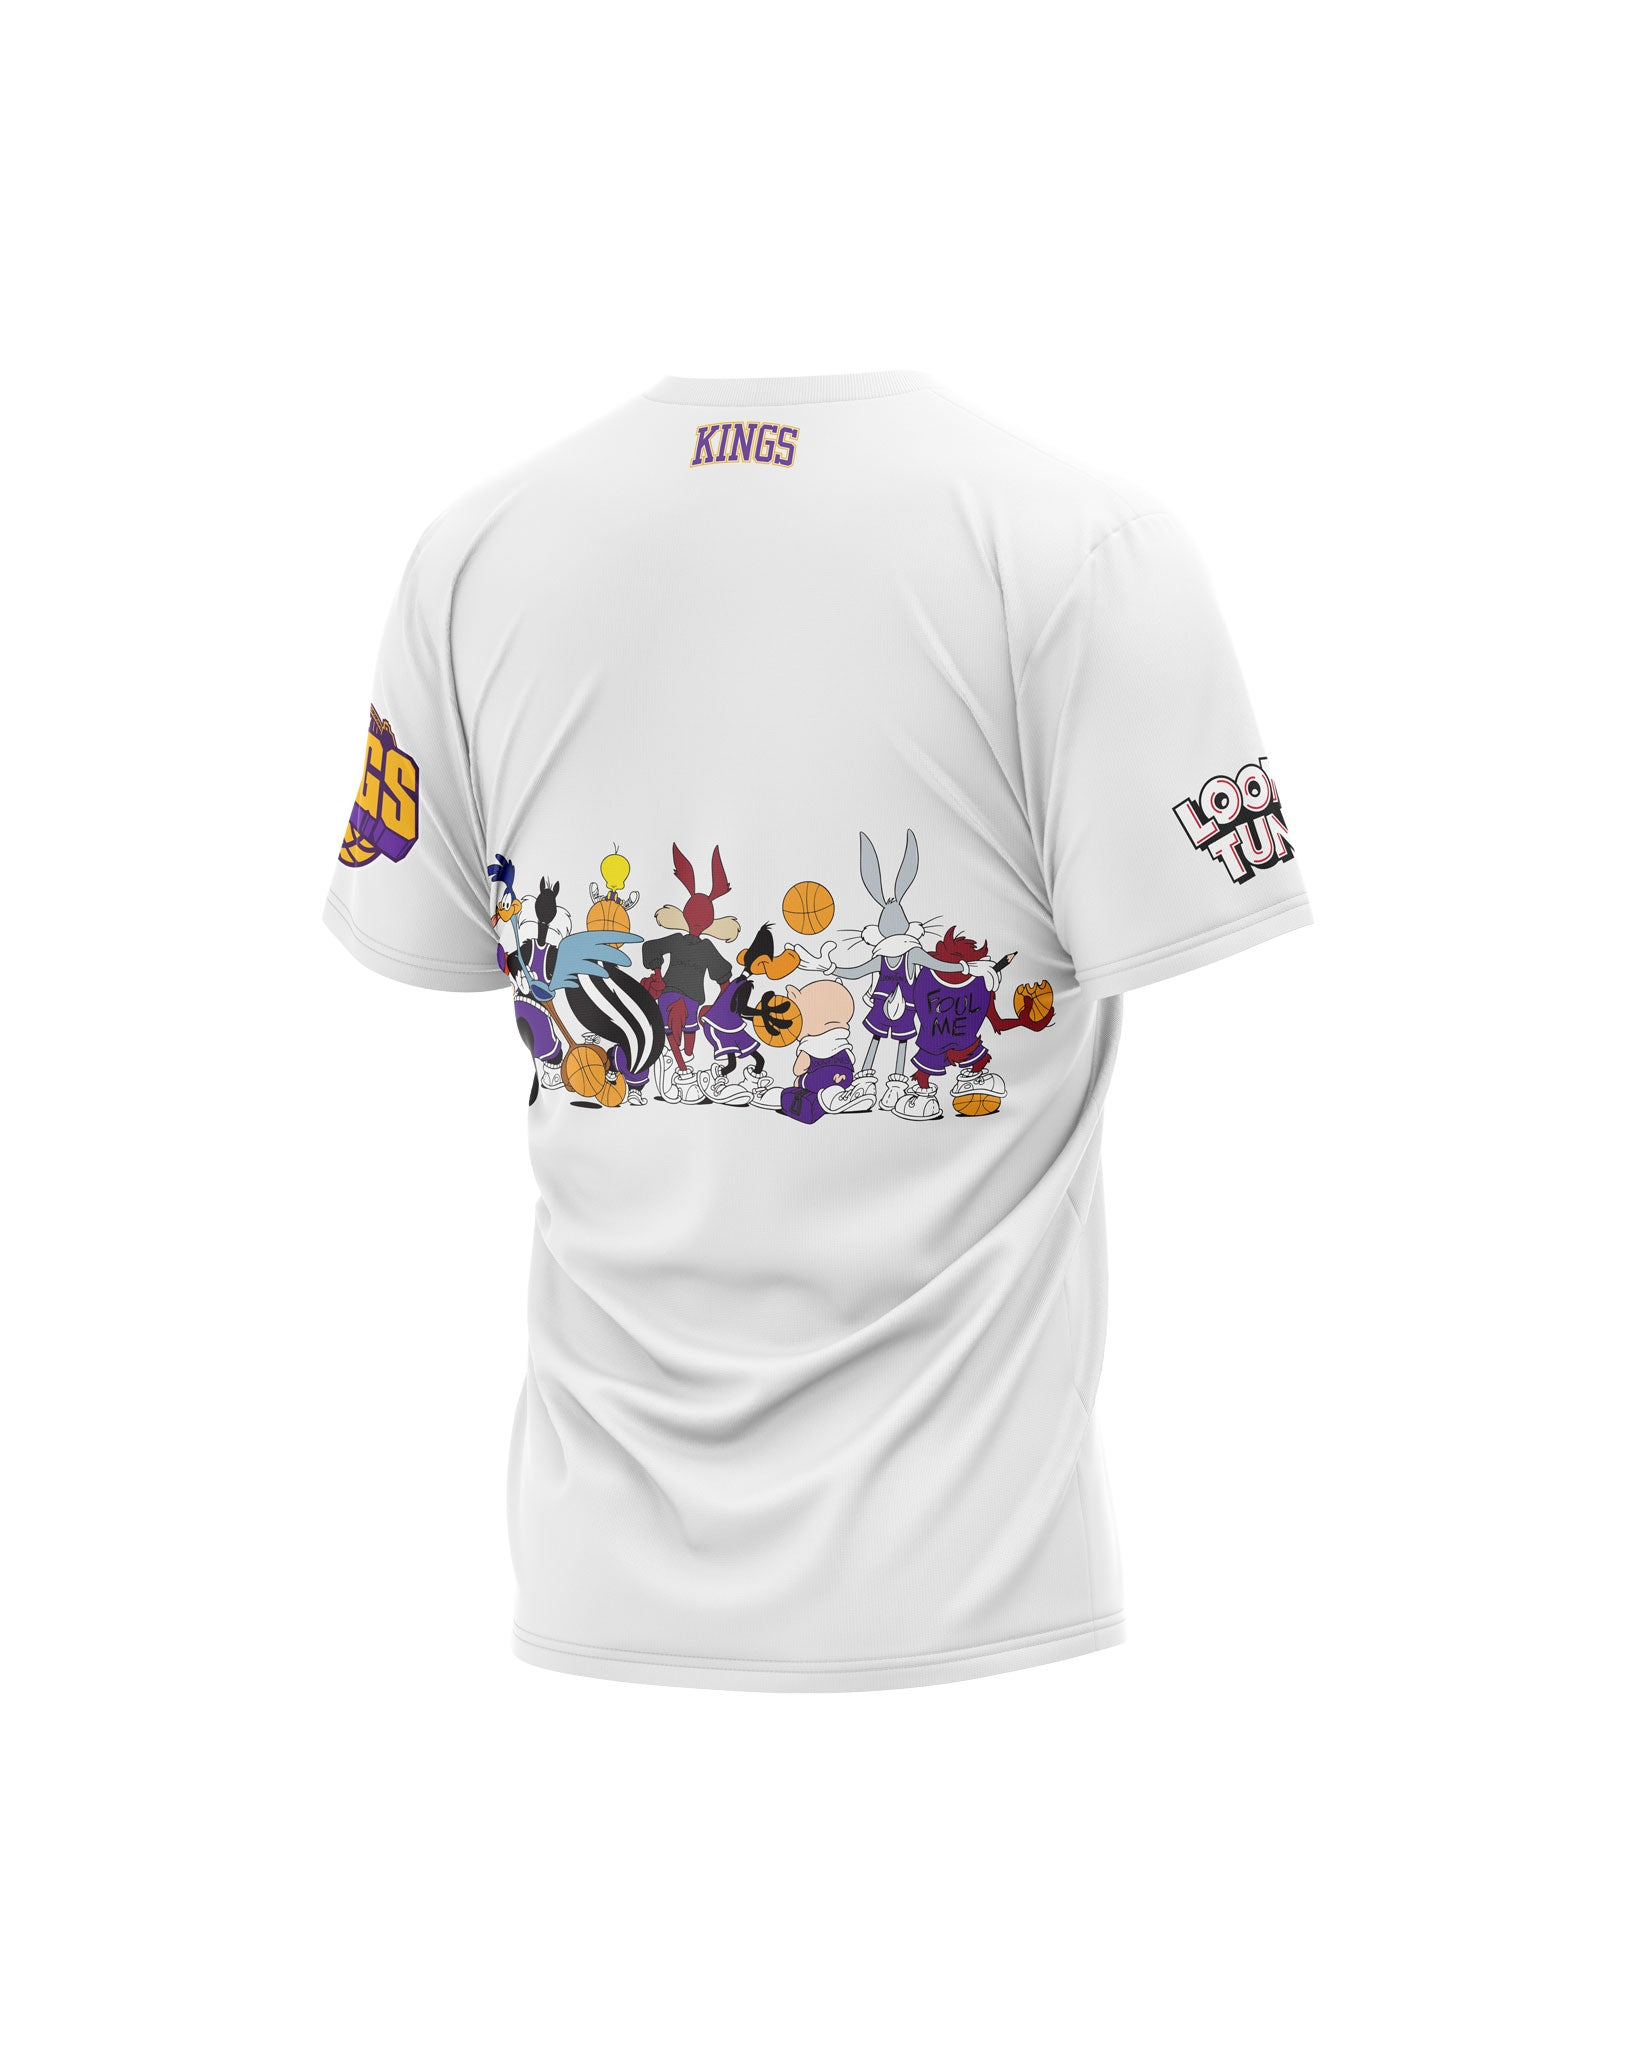 Sydney Kings 20/21 Looney Tunes Squad Tee